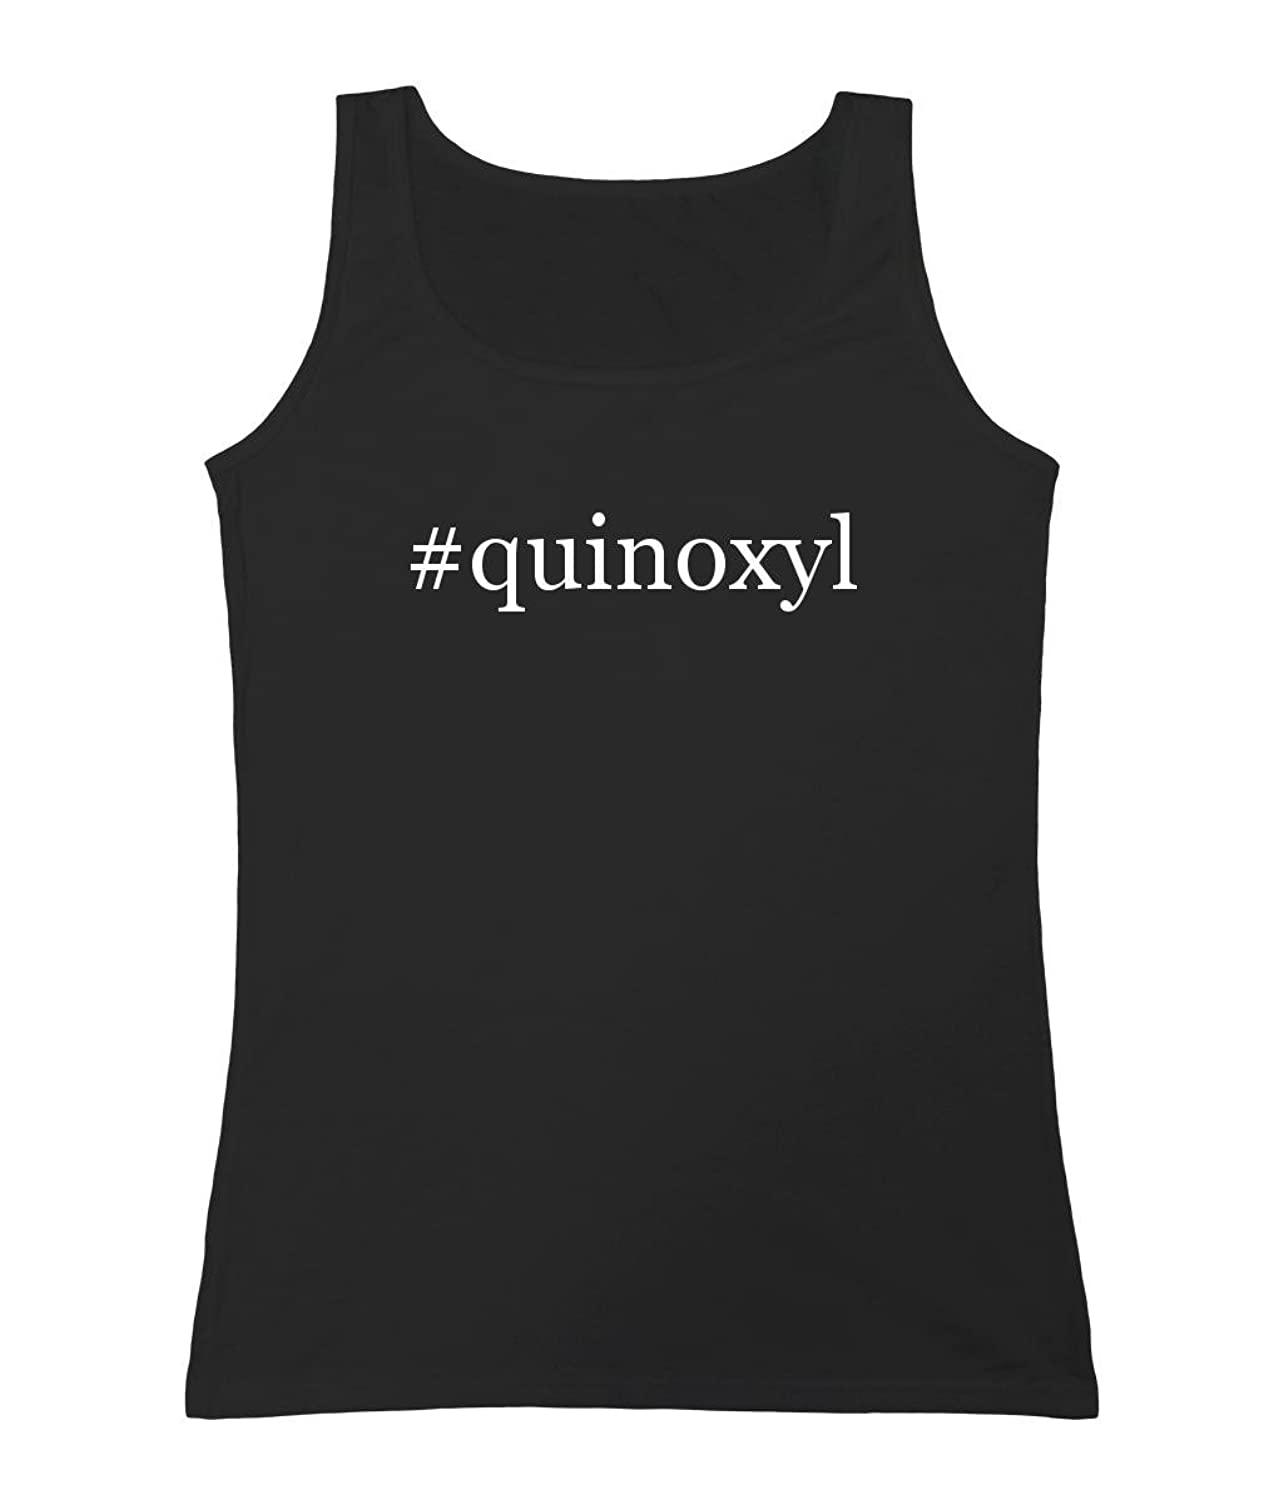 #quinoxyl - Women's Hashtag Tank Top